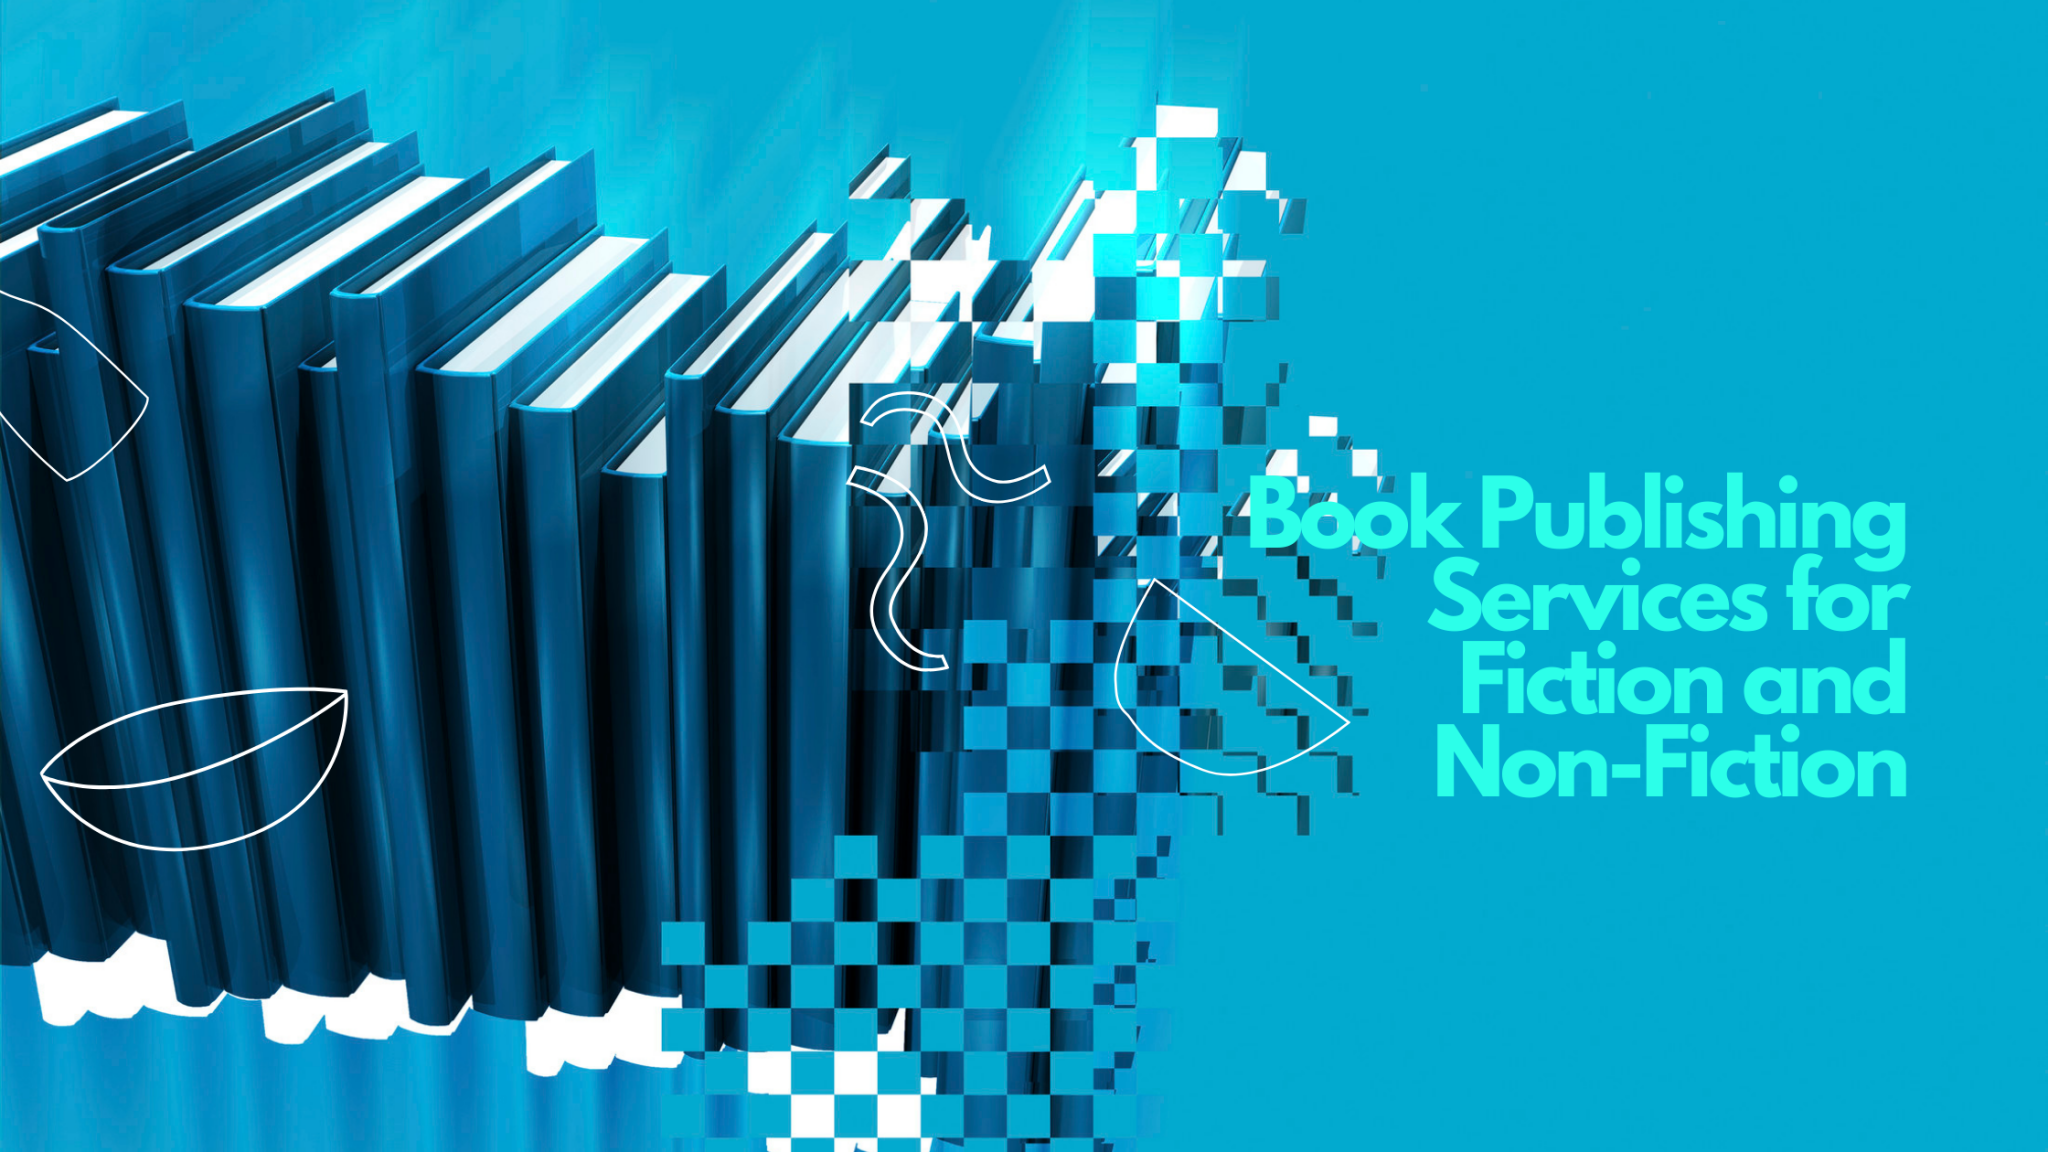 Book Publishing Services.